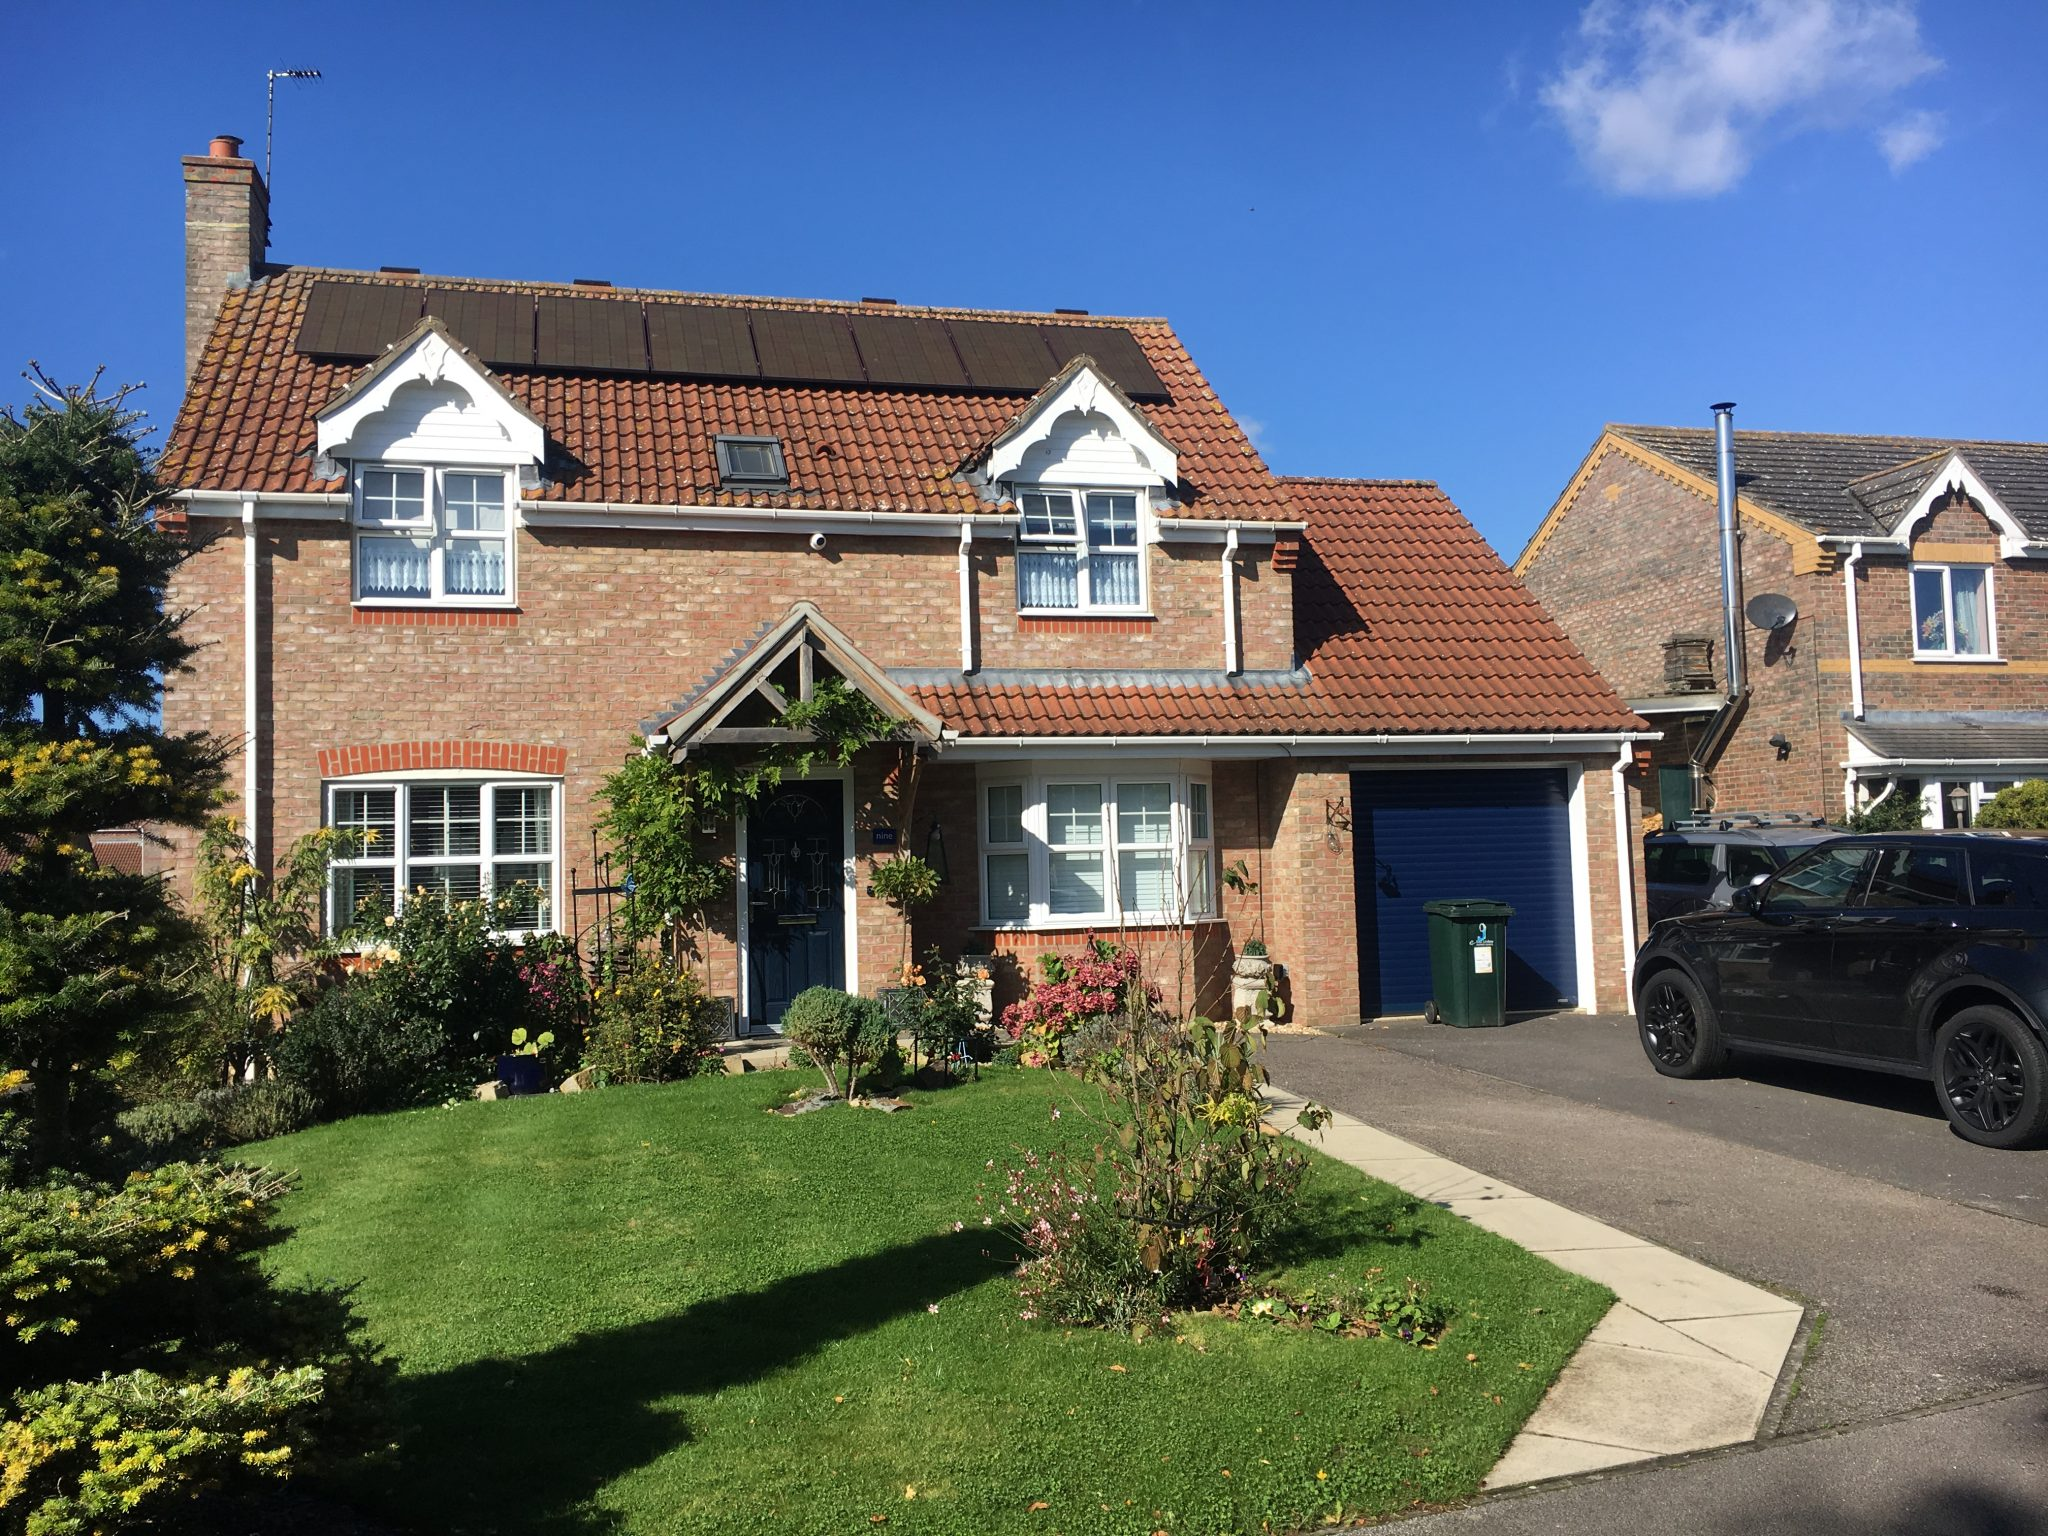 Air Source Heat Pump & Solar PV – Wragby, Lincoln